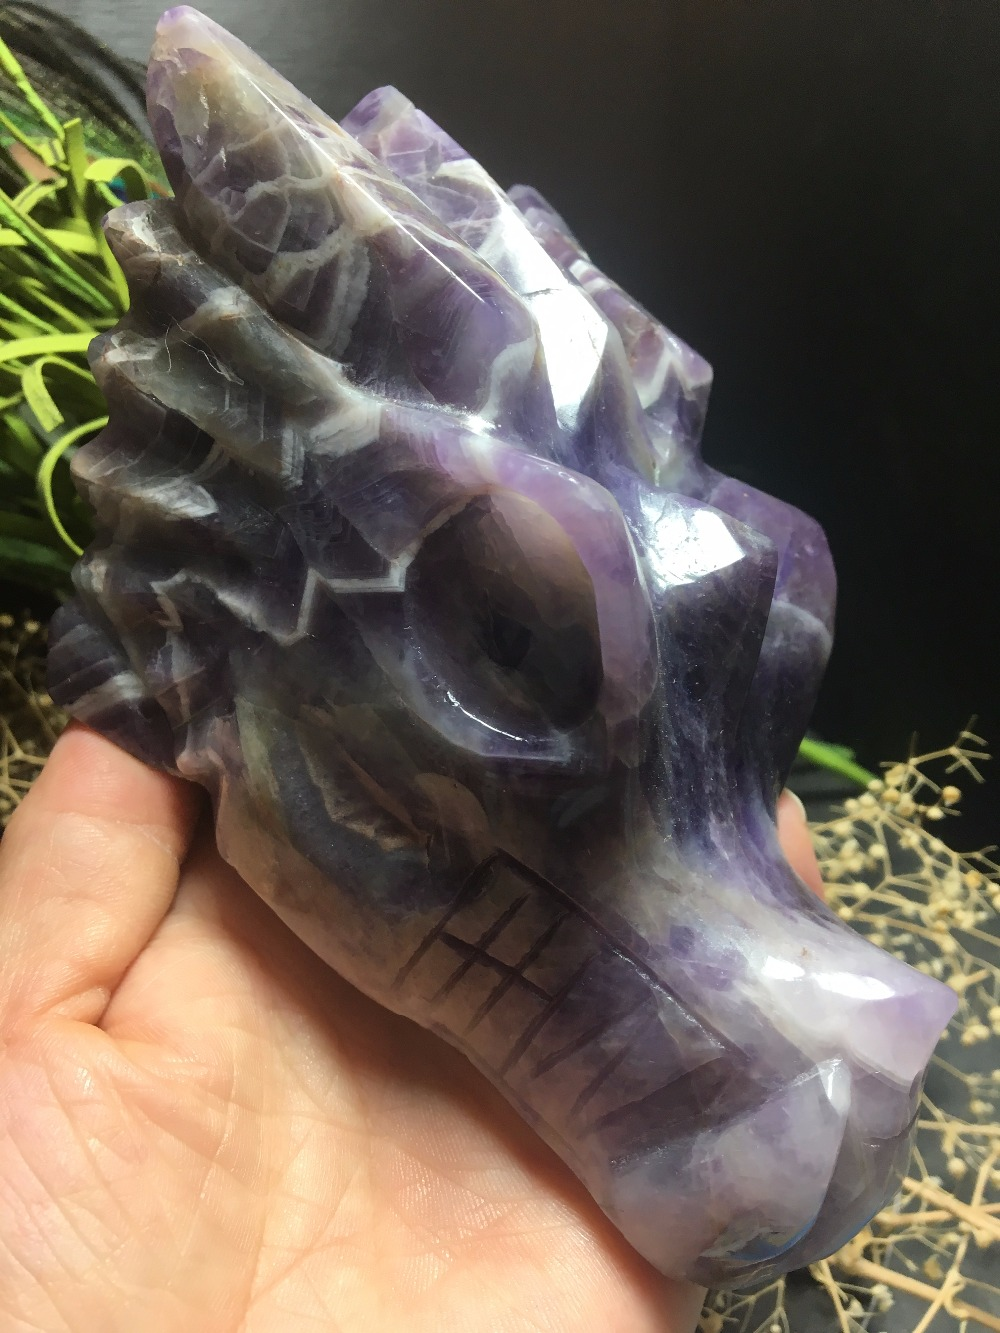 Natural  dreamlike  amethyst  hand- carved  faucet  healing reiki decorationNatural  dreamlike  amethyst  hand- carved  faucet  healing reiki decoration